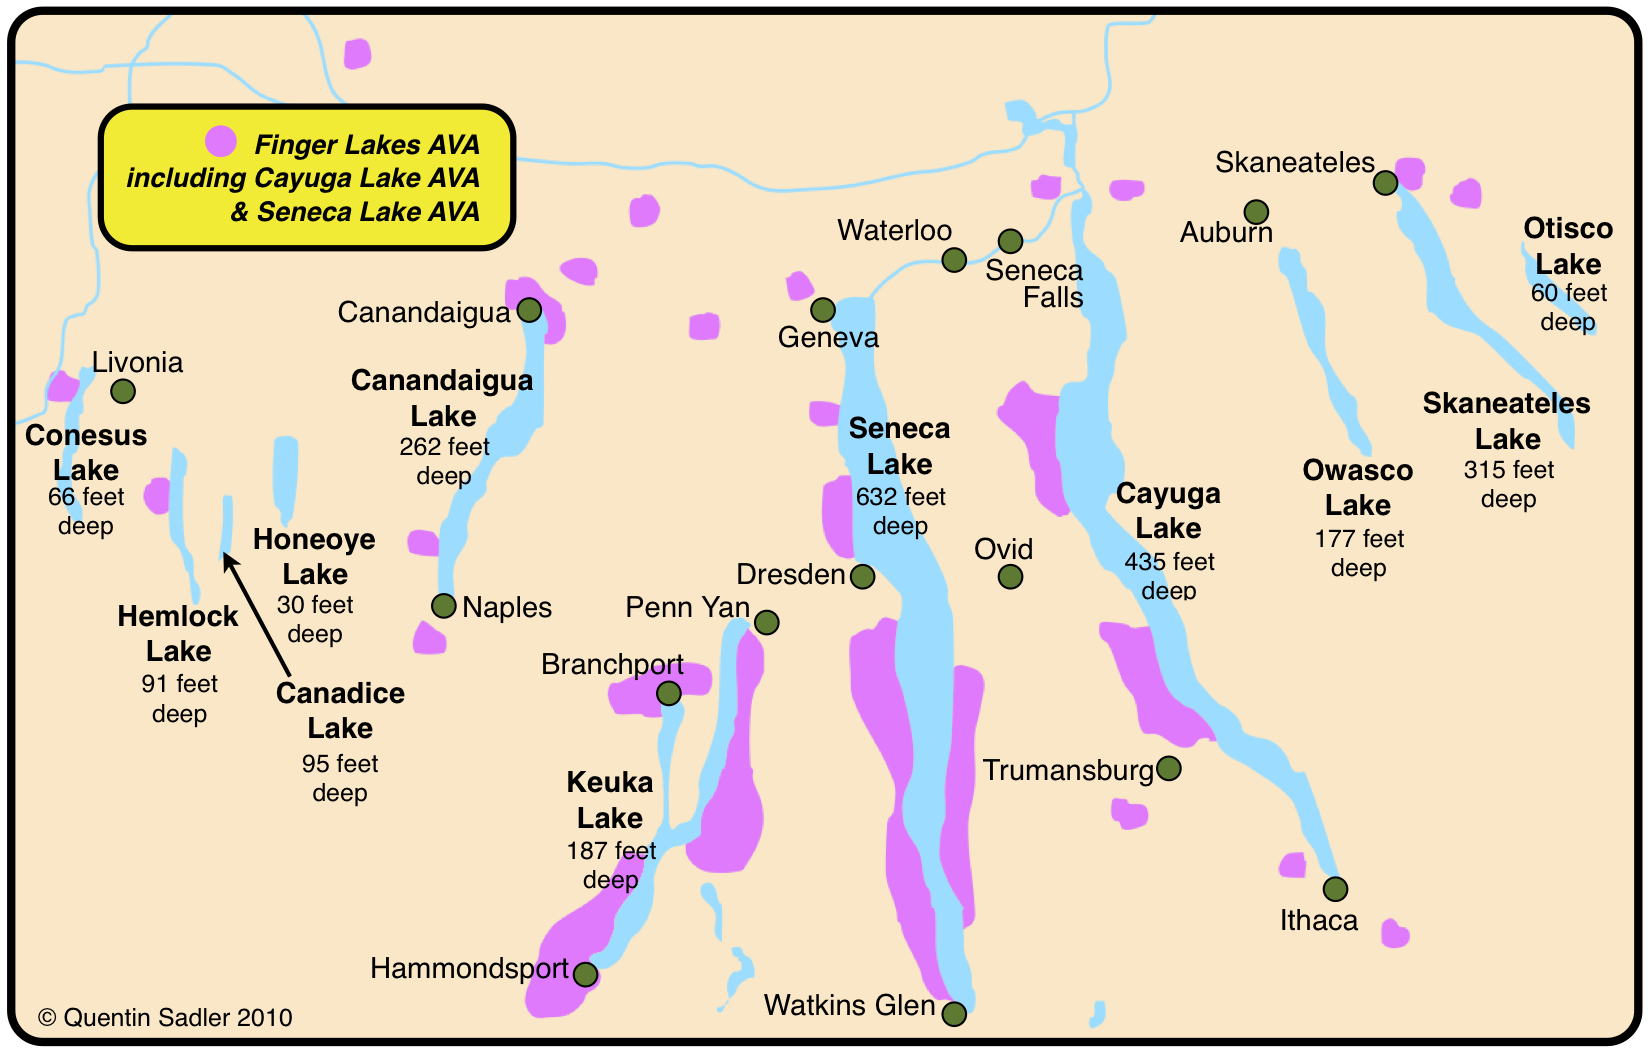 finger lakes wine country map Empire State Of Wine Essential Ny Maps Facts Grapes And Grains finger lakes wine country map